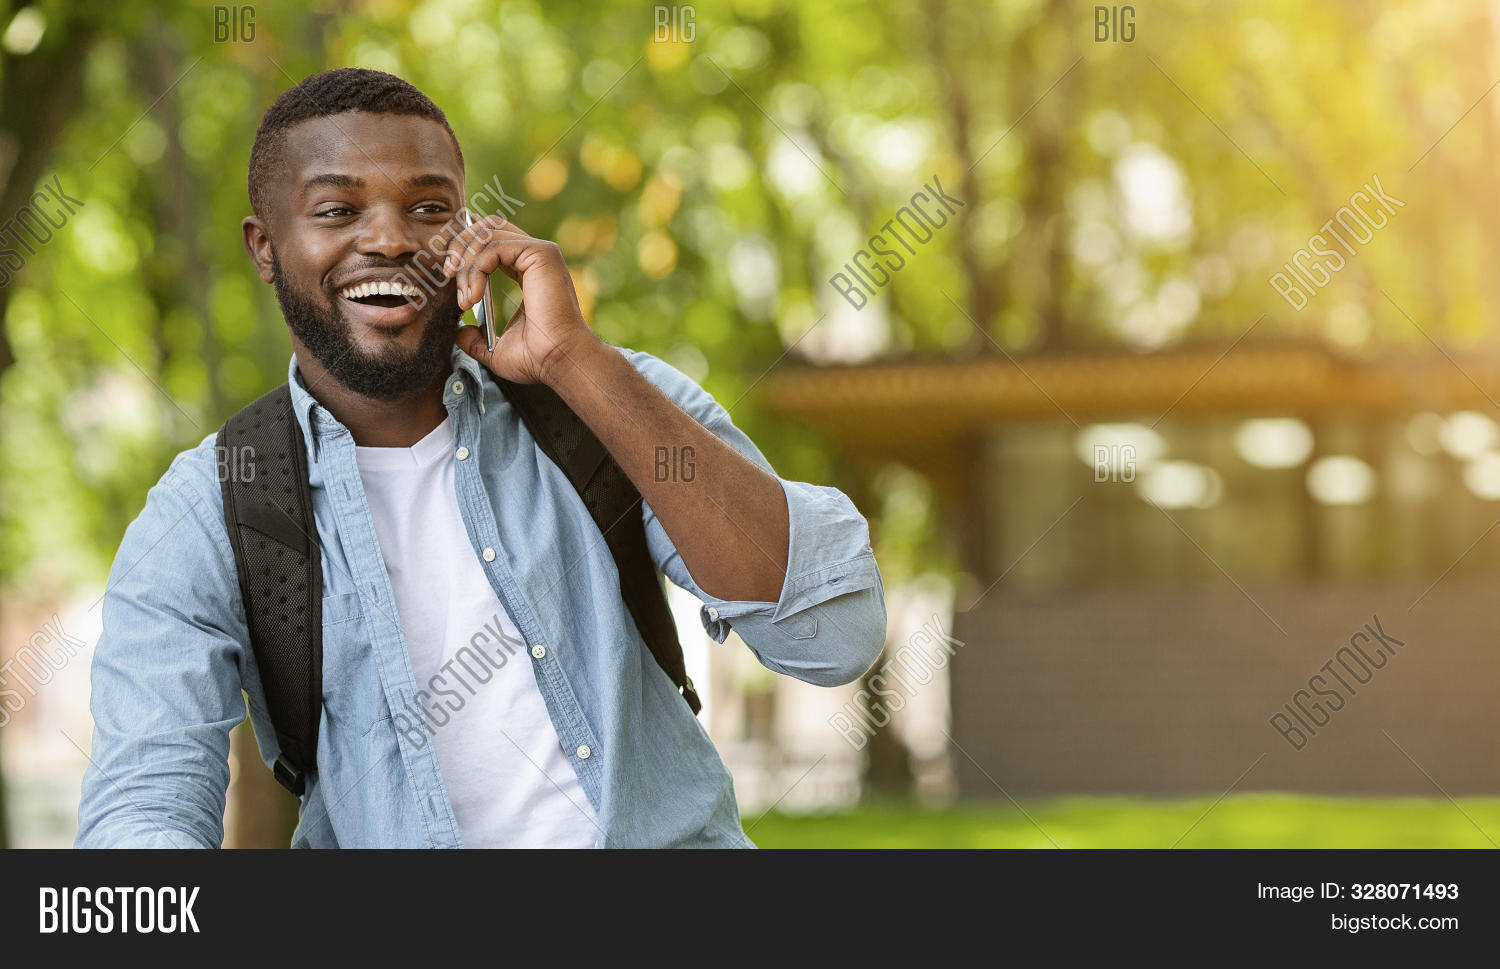 adult,attractive,background,backpack,bag,black,business,businessman,call,casual,cellphone,city,concept,connection,conversation,gadget,guy,handsome,laughing,lifestyle,looking,male,man,millennial,outdoor,panorama,people,person,phone,pleasant,portrait,smartphone,smile,smiling,successful,summer,talking,technology,telephone,tourist,travel,traveller,urban,walking,wireless,young